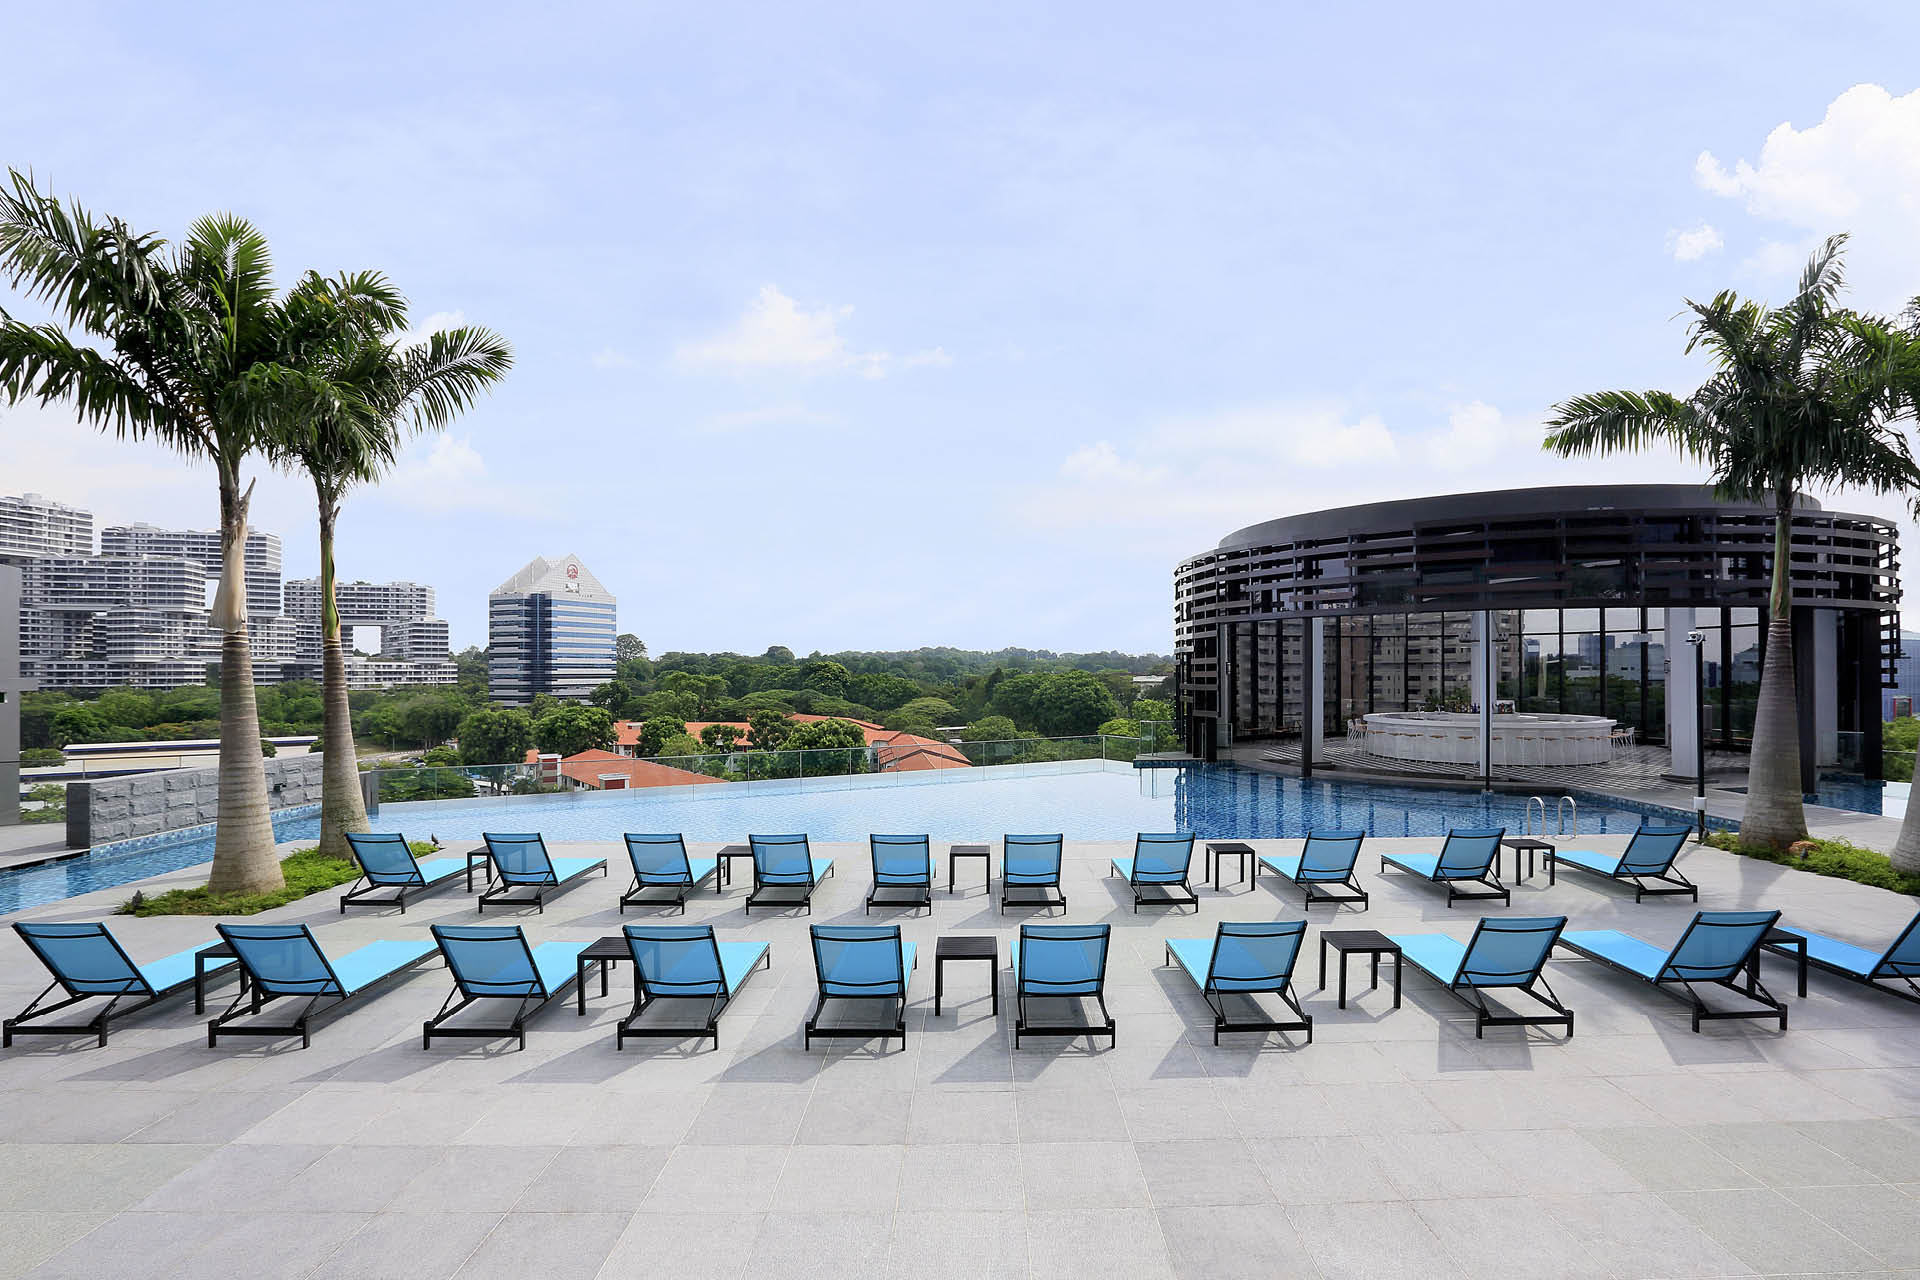 Pool Deck of Park Hotel Alexandra Singapore